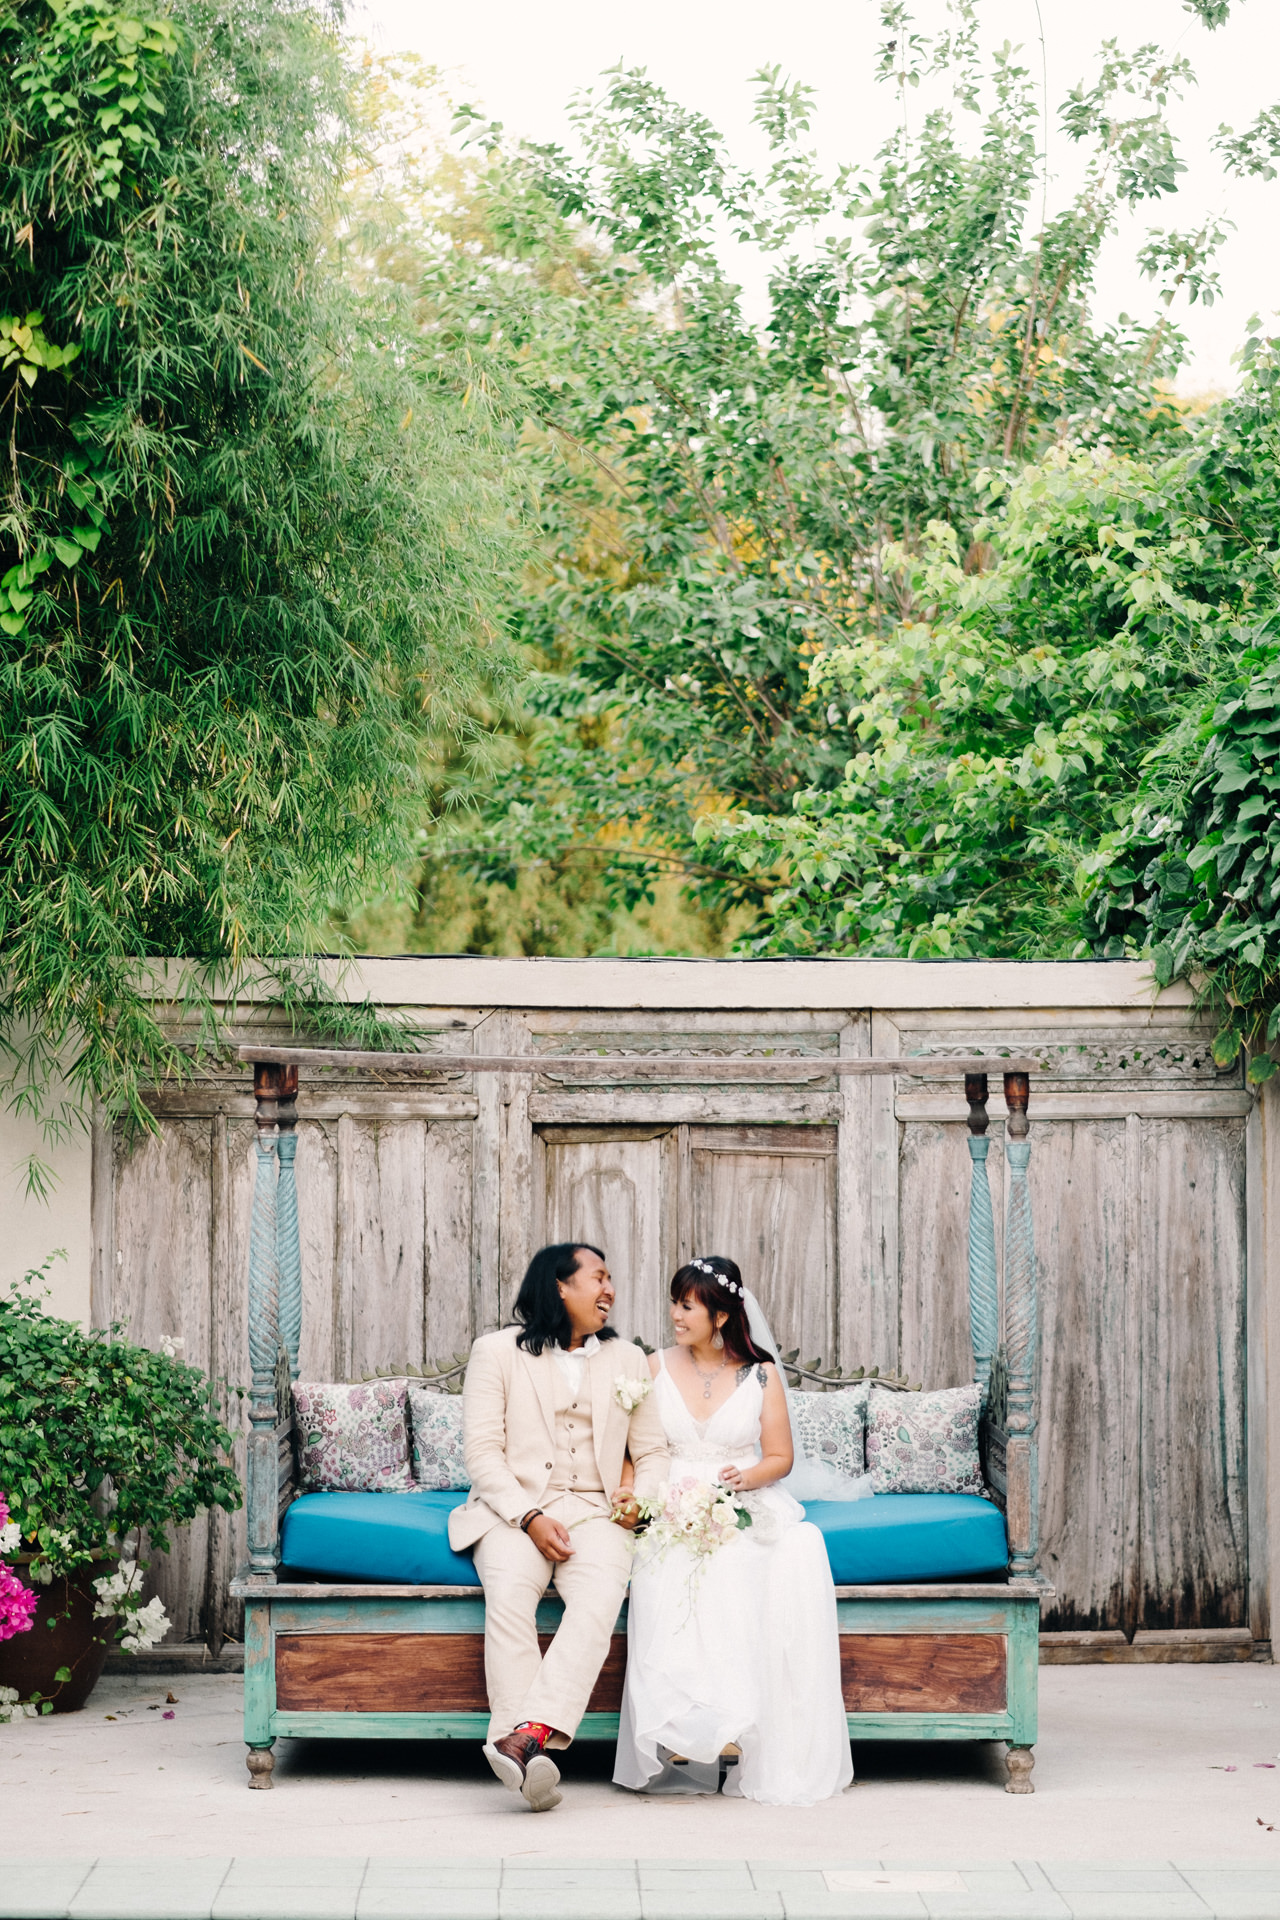 The Wedding of Bayu and Ivony at Gorgeous Bali Wedding Venue 32